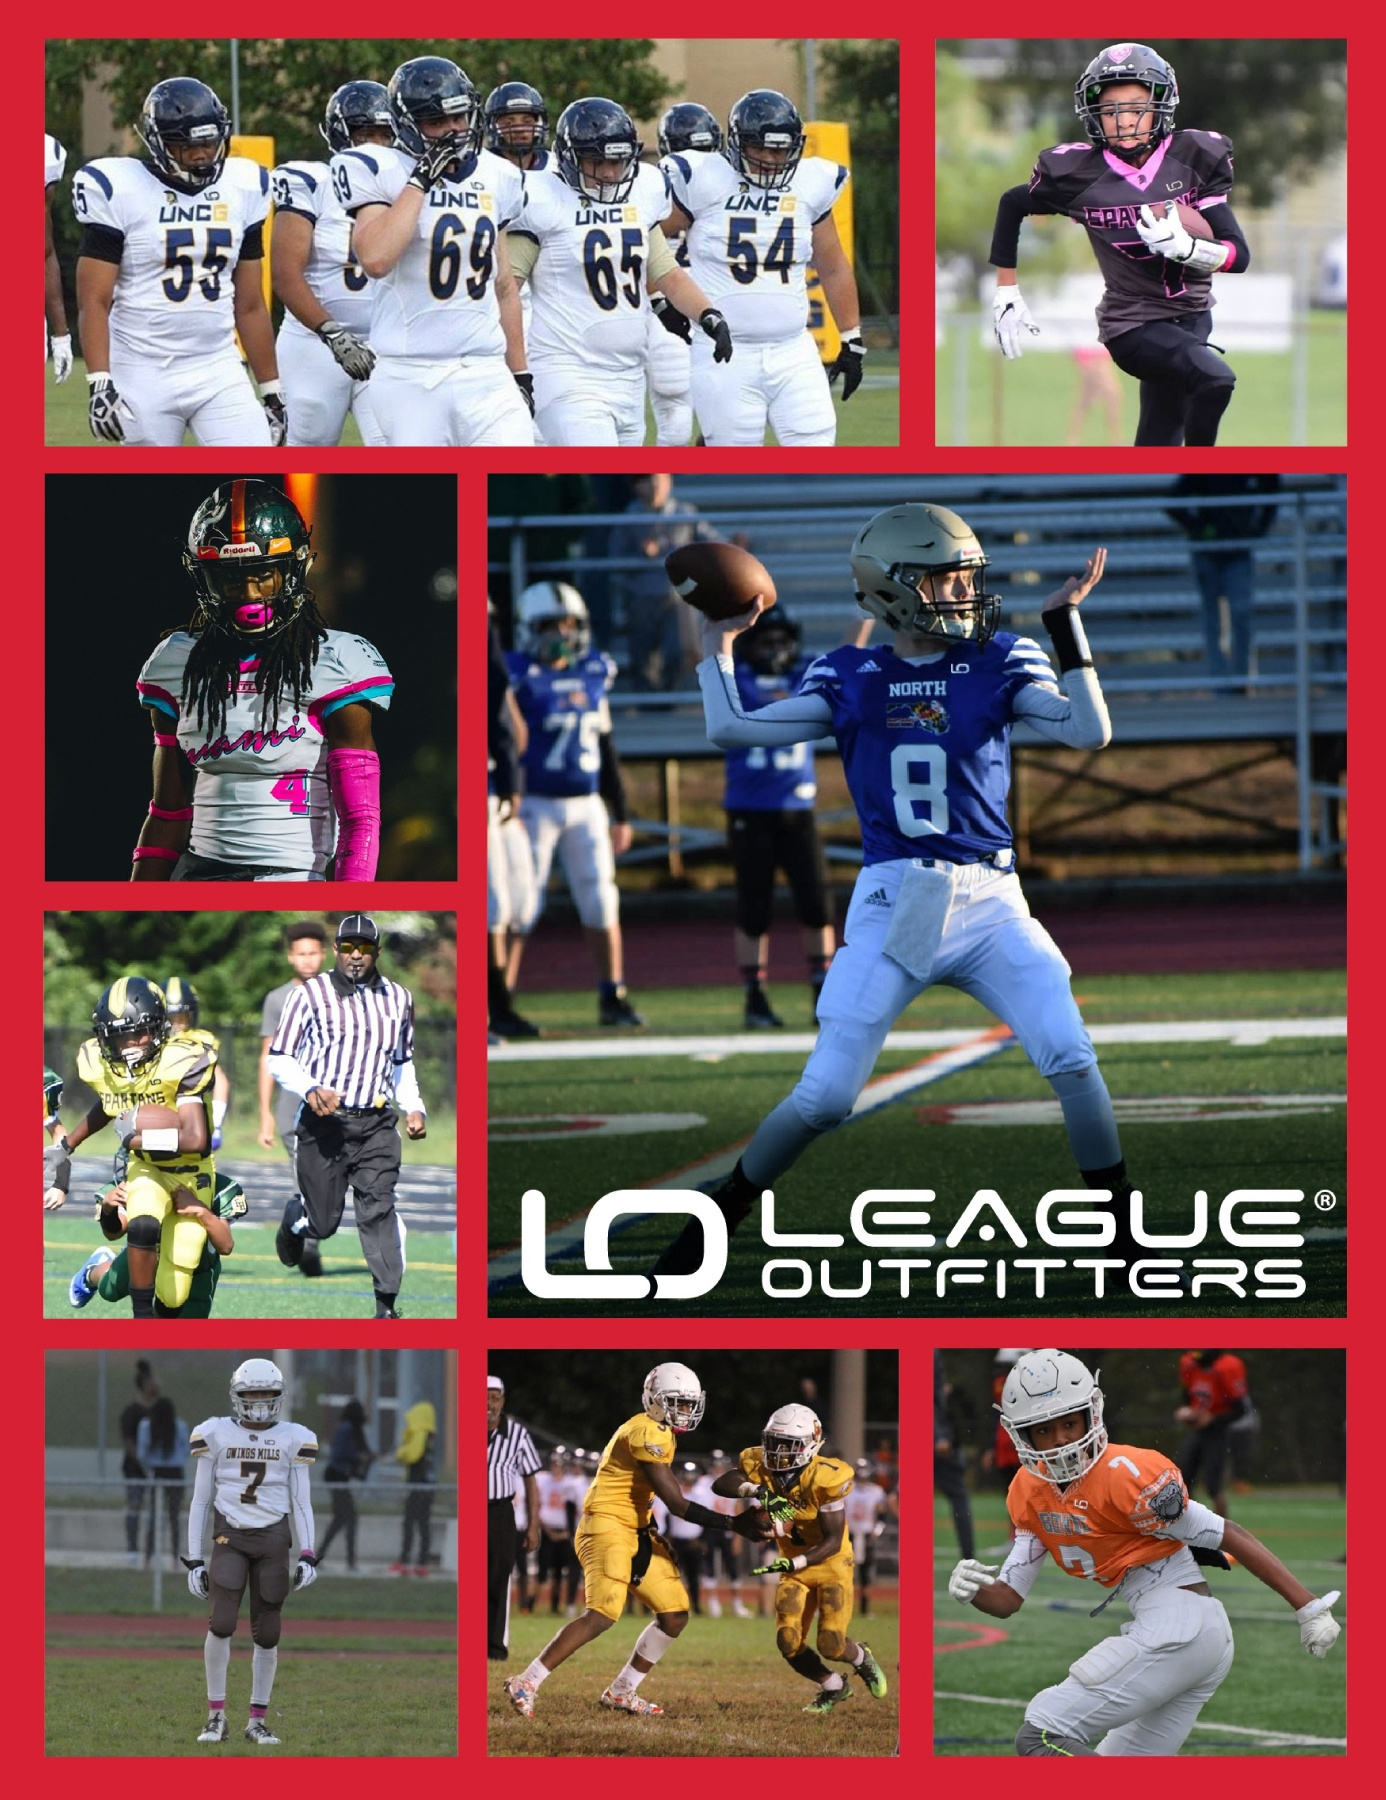 b5f6621c League Outfitters 2019 Football Catalog Pages 1 - 40 - Text Version |  AnyFlip